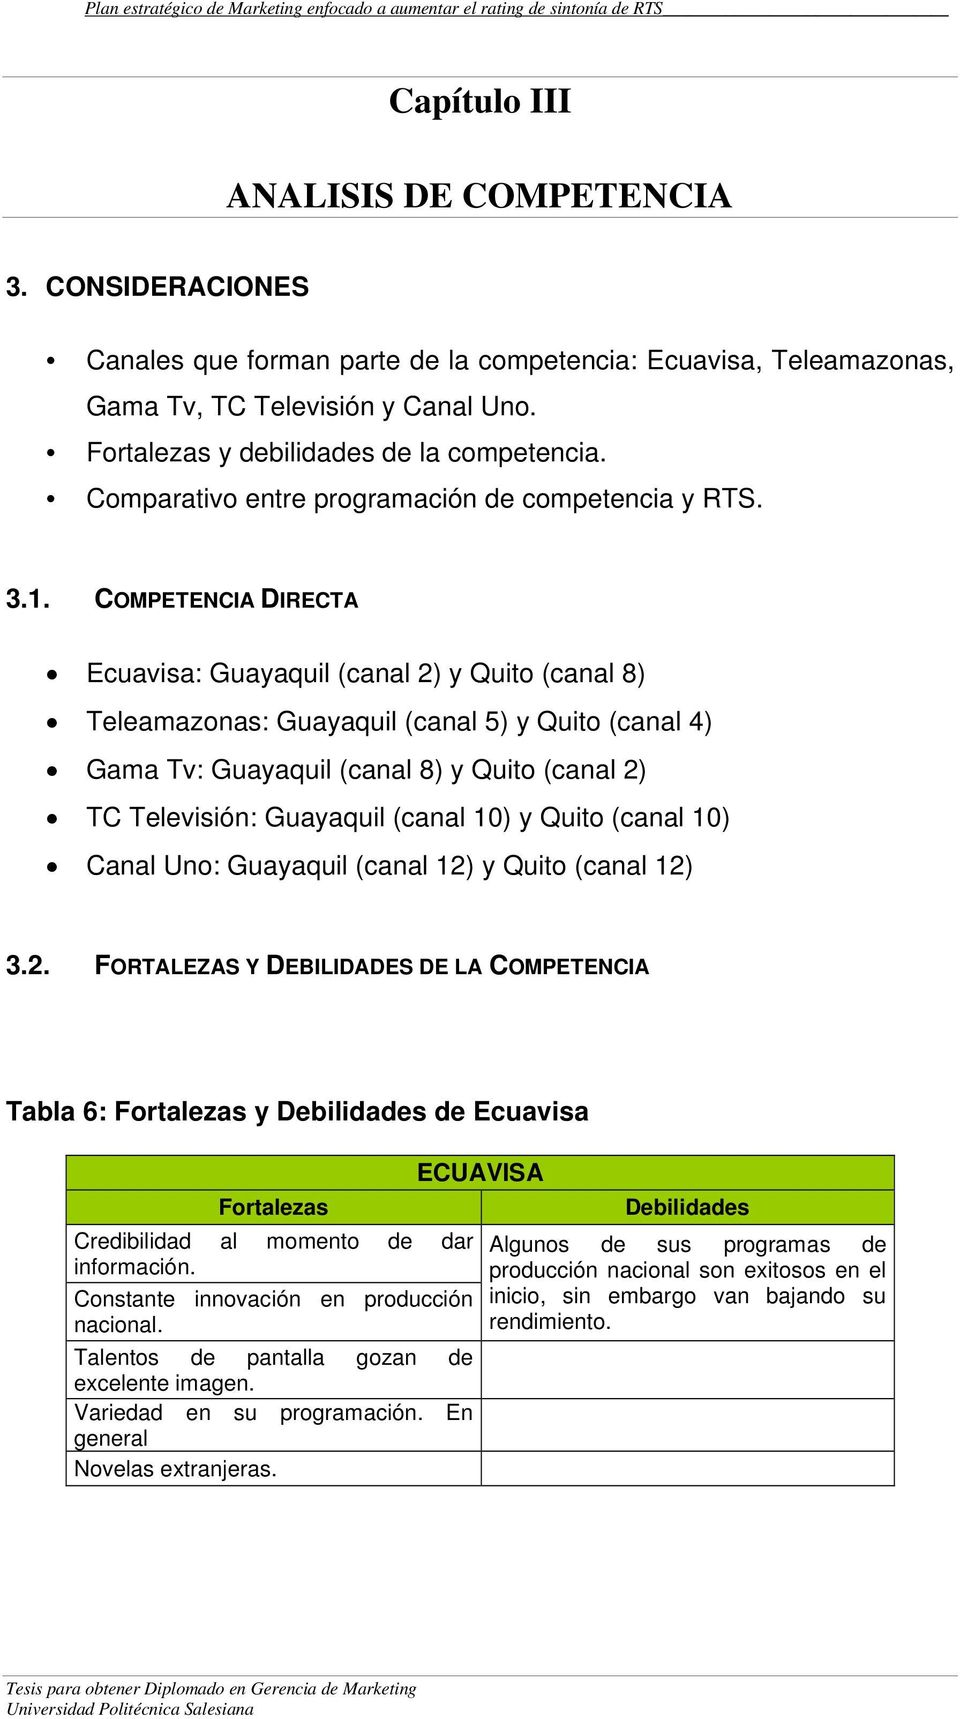 COMPETENCIA DIRECTA Ecuavisa: Guayaquil (canal 2) y Quito (canal 8) Teleamazonas: Guayaquil (canal 5) y Quito (canal 4) Gama Tv: Guayaquil (canal 8) y Quito (canal 2) TC Televisión: Guayaquil (canal